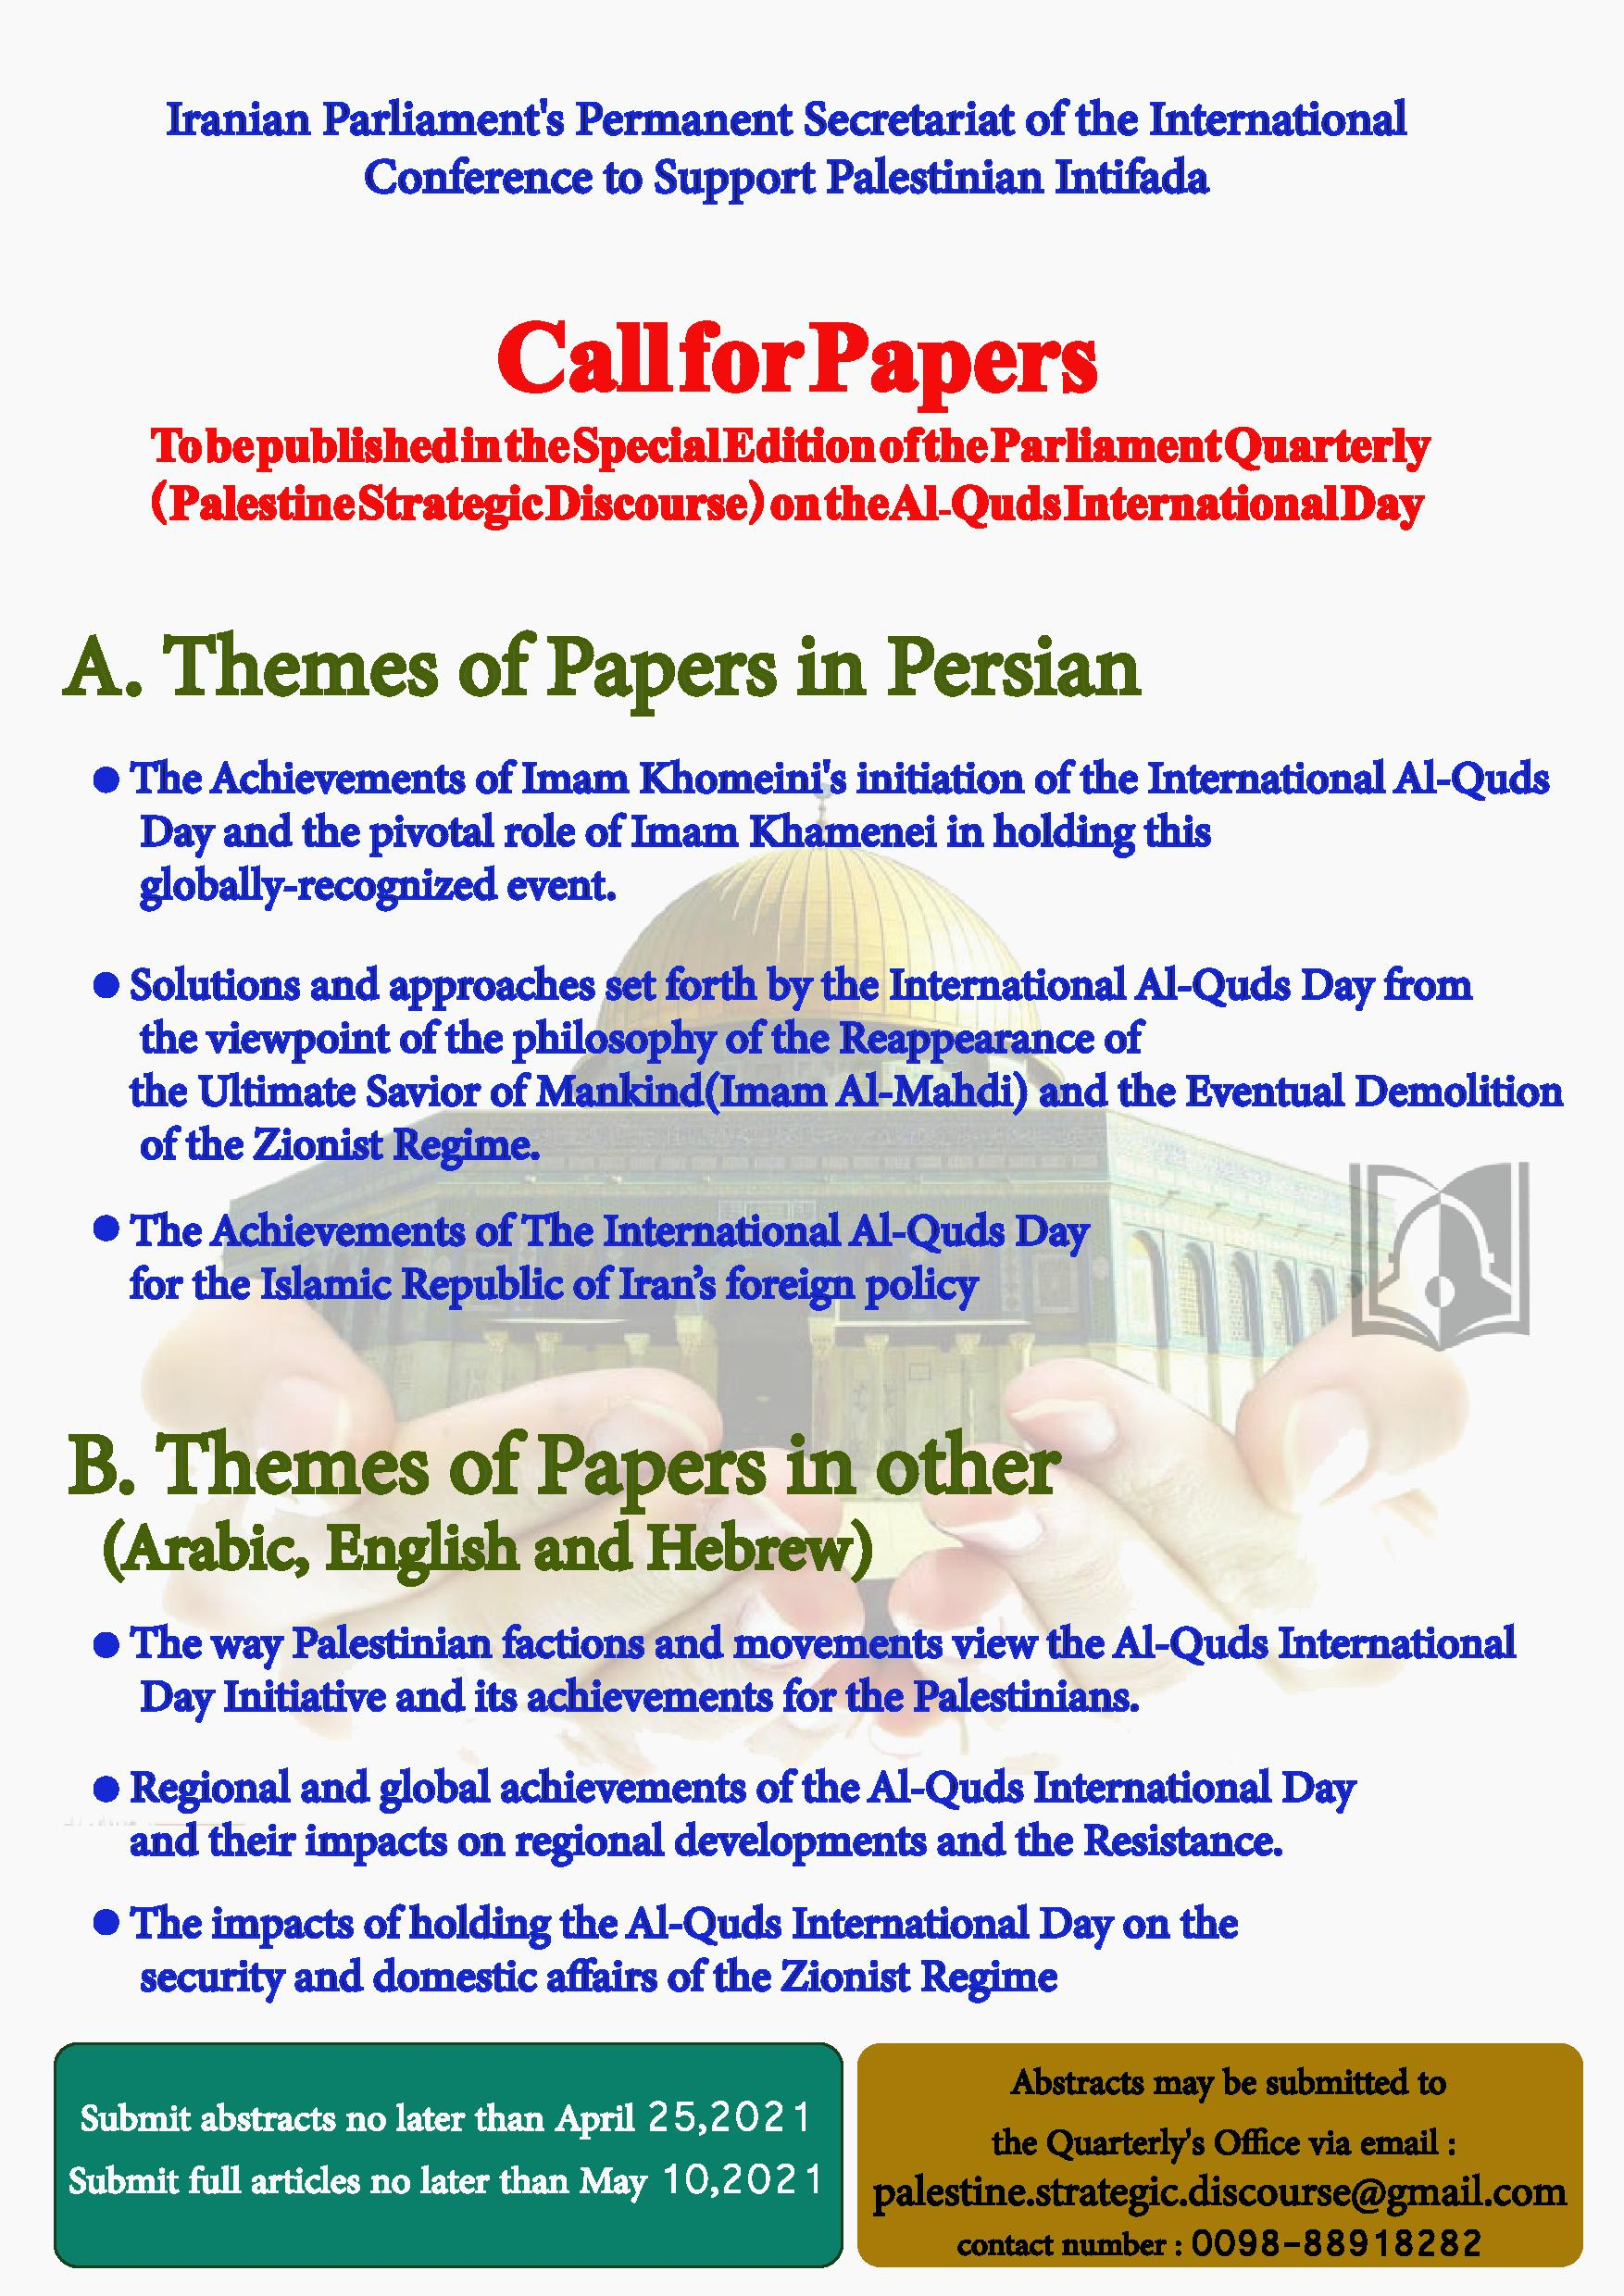 Call for Papers to be published in the Special Edition of the Parliament Quarterly